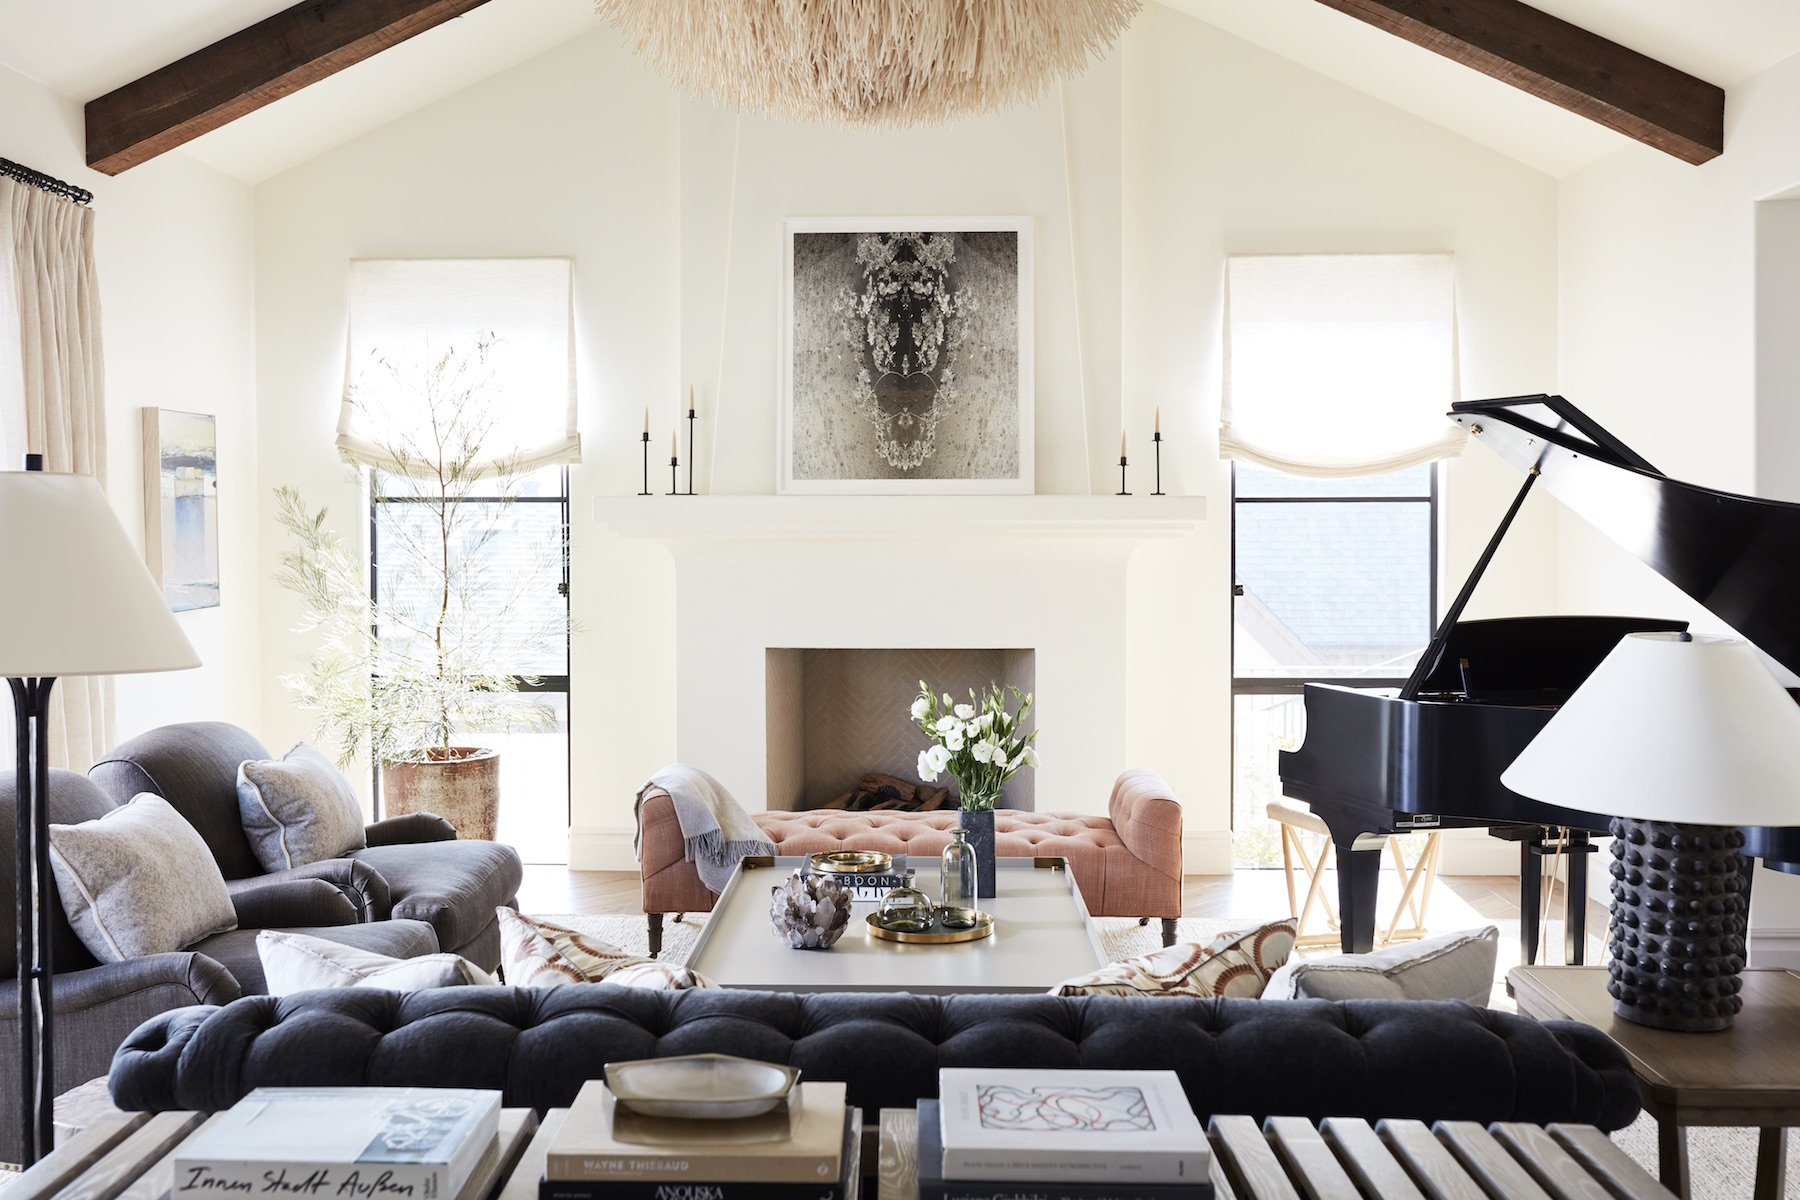 Bslrdip50 Best Simple Living Room Decorating Ideas Pictures Today 2021 02 10 Download Here